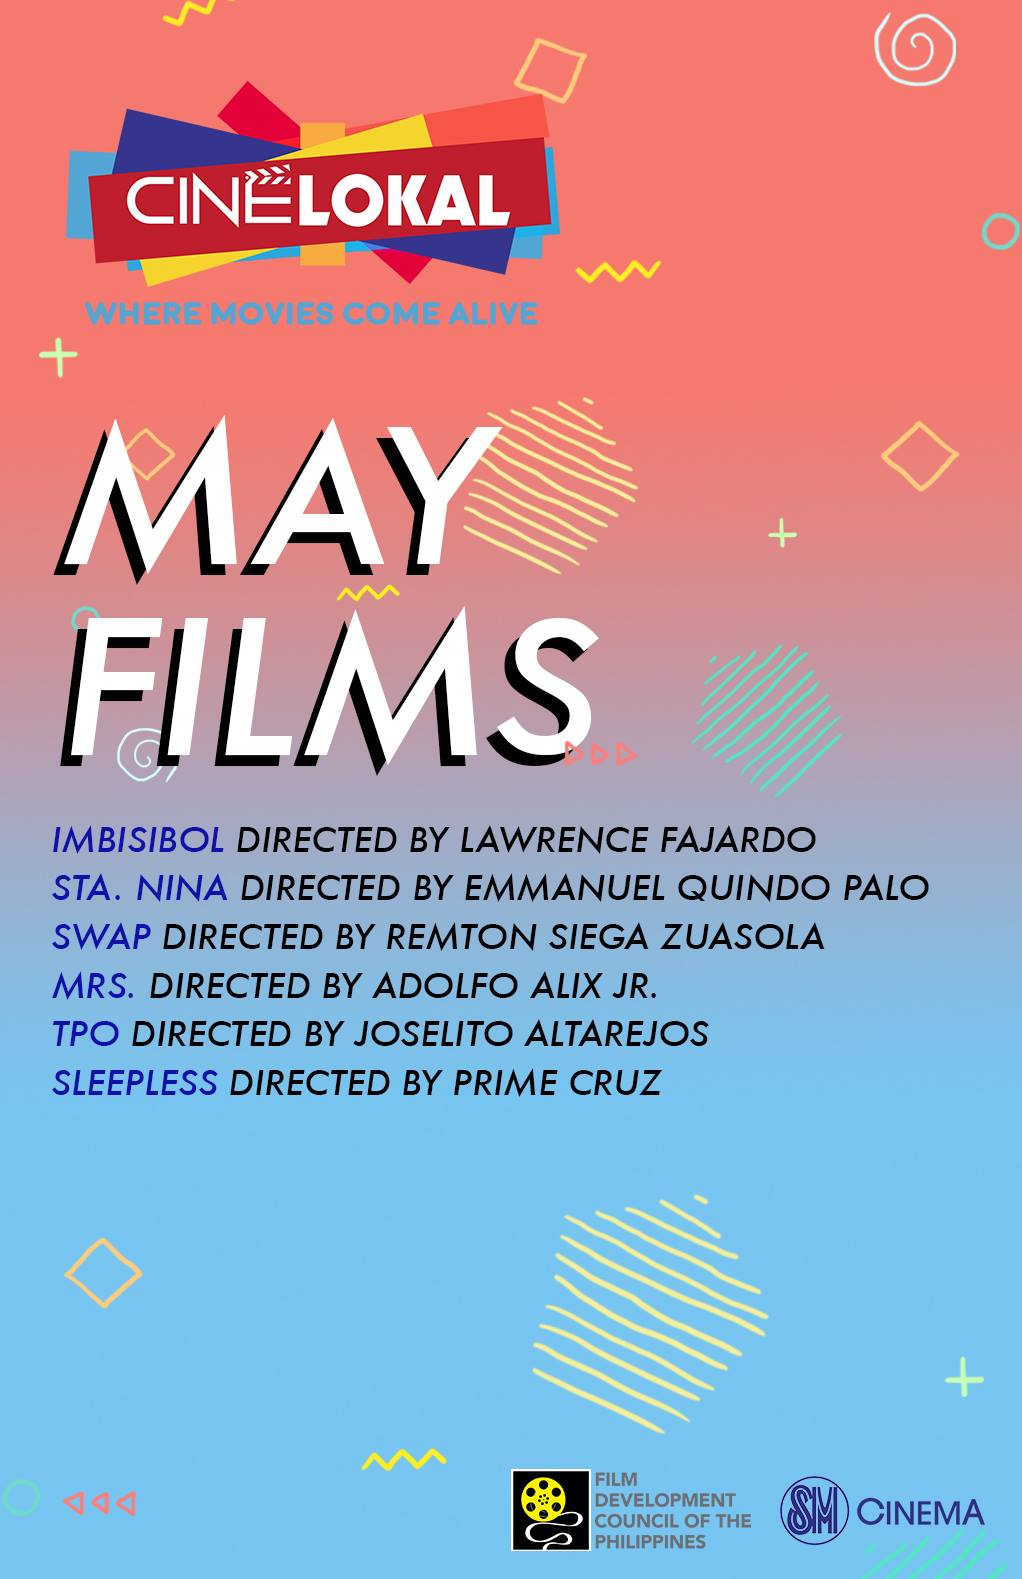 Cine Lokal Page Liked · May 18 · UPDATED MAY FILMS LINEUP Ngayong Mayo, ihanda na ang inyong mga sarili dahil narito ang mga pelikulang dapat ninyong abangan para sa May Films ng CineLokal. Narito na ang mga pelikulang handog namin para lamang sa inyo. May 5 - May 11 IMBISIBOL the movie directed by Lawrence Fajardo Sta. Niña directed by Emmanuel Quindo Palo May 12 - May 18 SWAP directed by Remton Siega Zuasolaa MRS. directed by Adolfo Borinaga Alix Jr. May 19 - May 25 TPO Temporary Protection Order by Joselito Altarejos May 26 - June 1 Sleepless directed by Prime Crisologo Cruzz We have the best Pinoy films you can watch at eight (8) SM Cinema: Mall Of Asia, Megamall, North Edsa, Fairview, Southmall, Bacoor, Iloilo and Cebu. Kindly check the smcinema.com for the screening schedule. Huwag mag-alala dahil P120 pa rin ang ticket price ng mga pelikulang ito, angas 'di ba? Isama sa inyong mga to-do list at sabay sabay nating panoorin ang mga ito ngayong Mayo! #CineLokal #MayFilms — with TJ Trinidad, Remton Siega Zuasola, Adolfo Borinaga Alix Jr., Prime Crisologo Cruz, Joselito Altarejos, Glaiza De Castro, Elizabeth Oropeza, Emmanuel Quindo Palo, Oliver Aquino, Mara Lopez, Lawrence Fajardo, Lotlot De Leon, Micko Laurente, Archie Del Mundo, Dominic Roco, Cinemalaya, QCinema, Sleepless and Sinag Maynila.